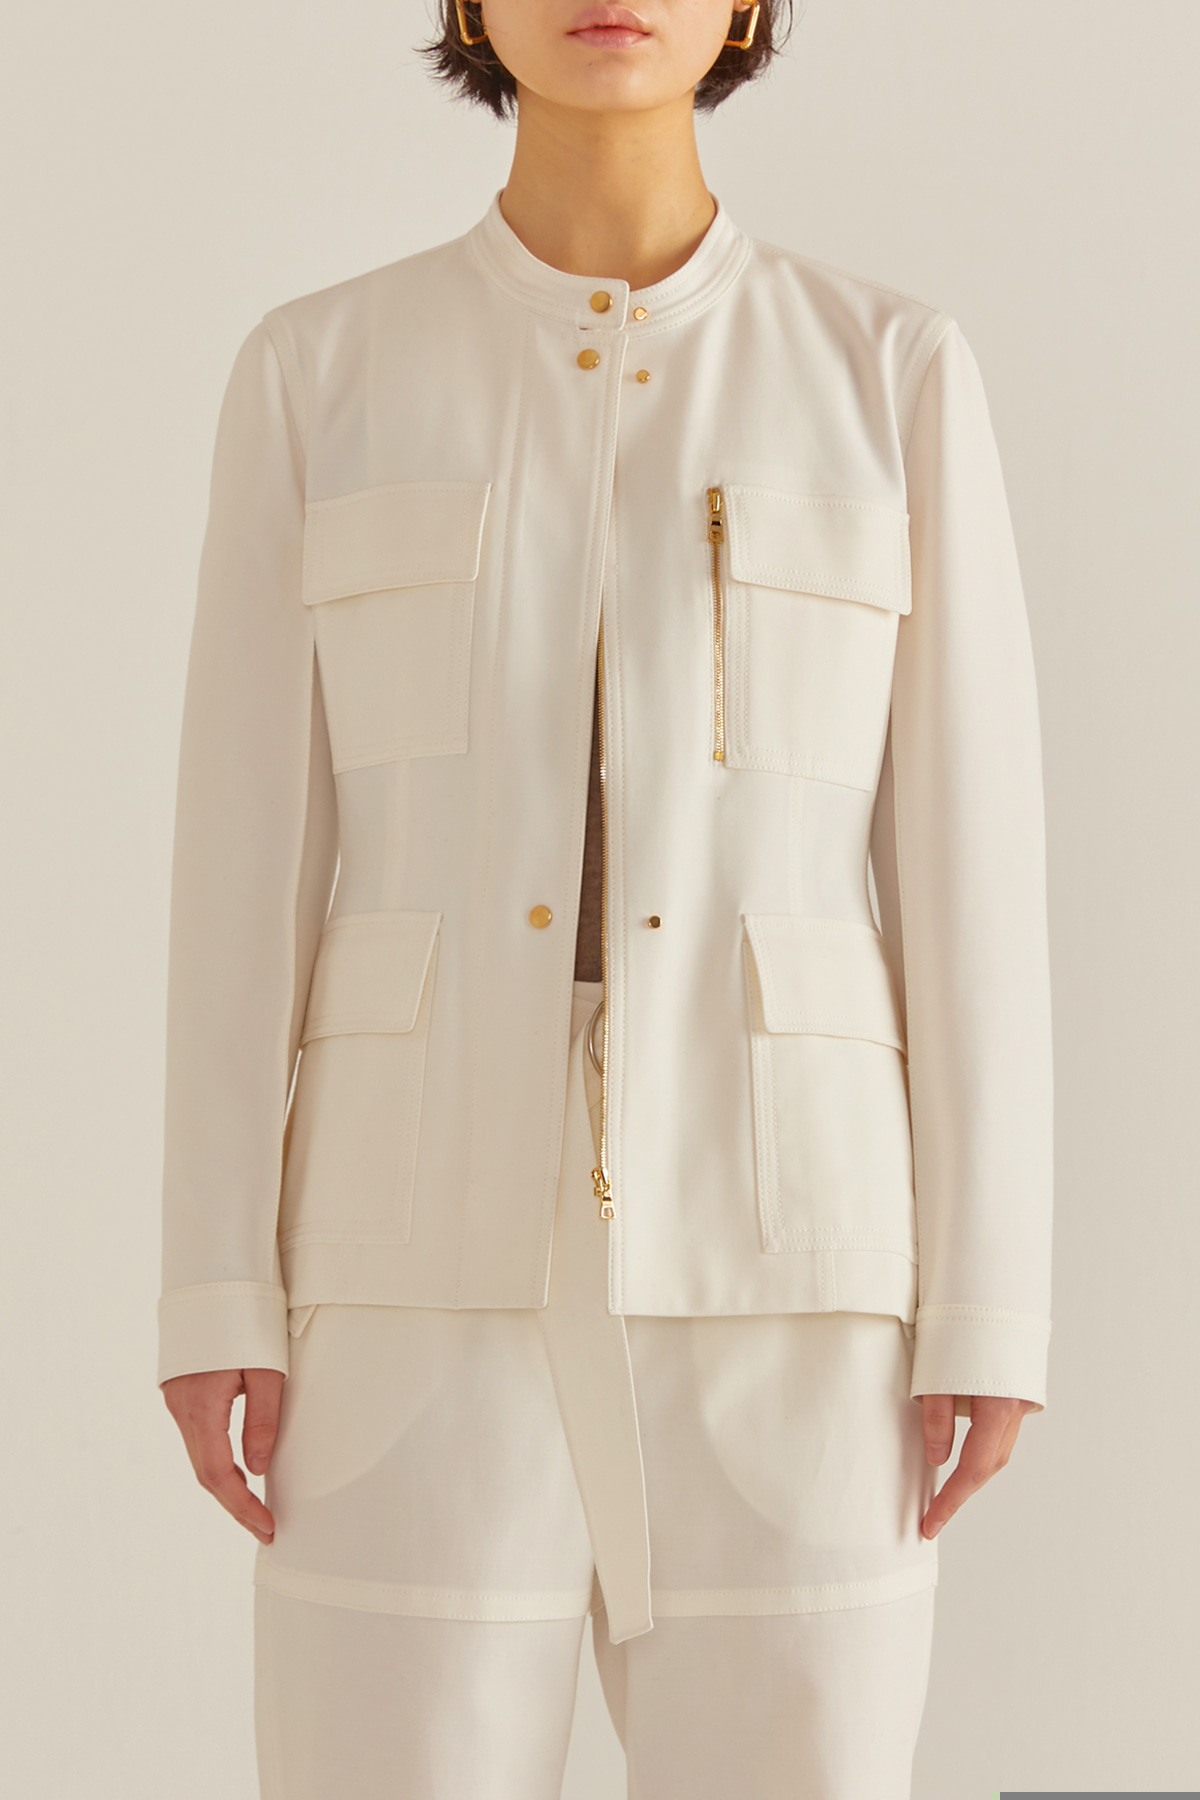 Coarse Stitched Jacket White